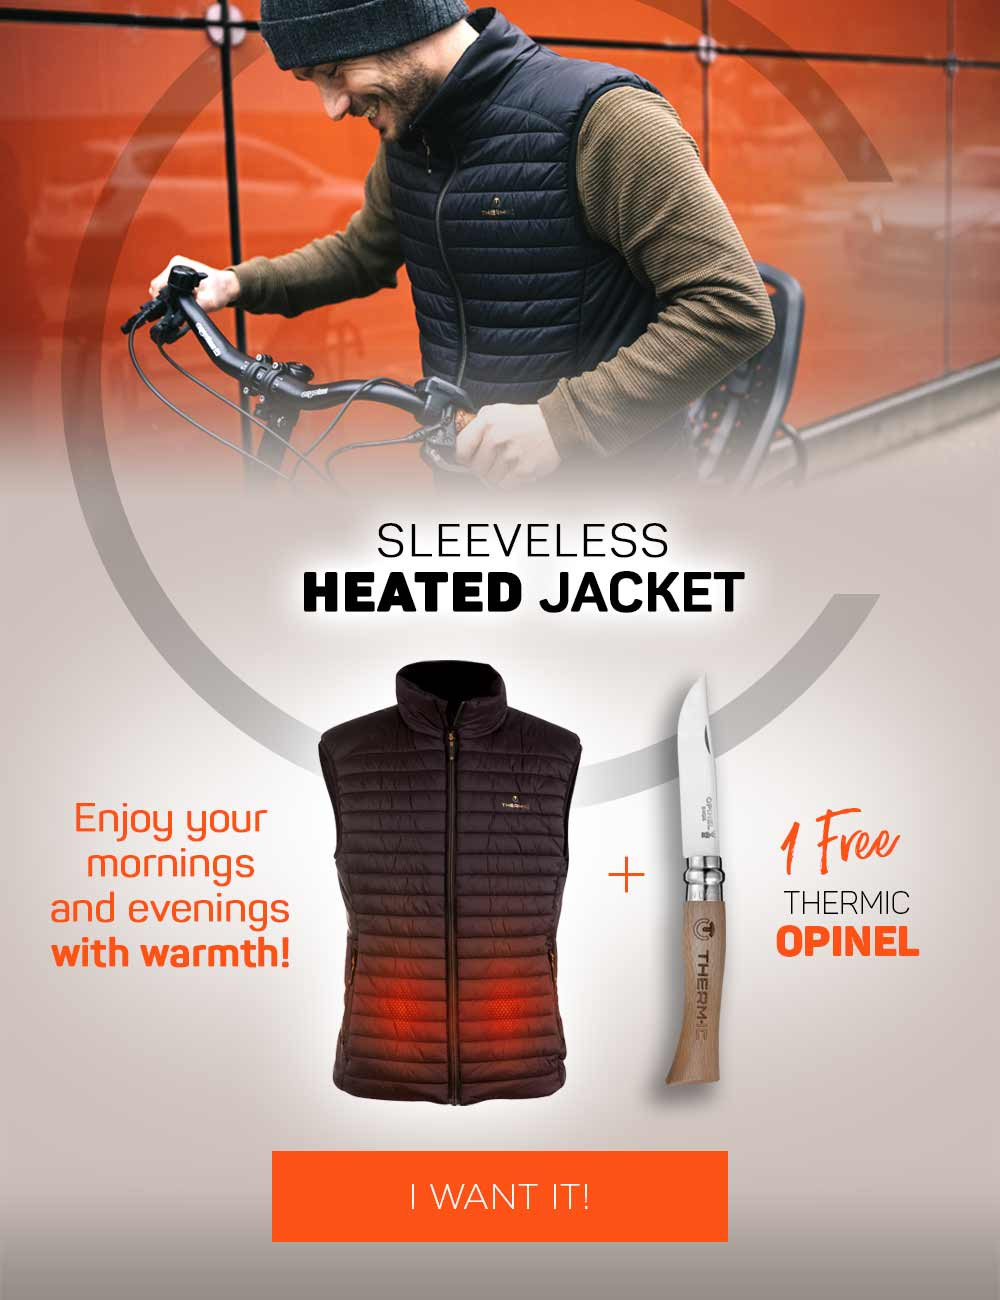 Get your free Opinel knife when you buy a pack of heated vest and battery